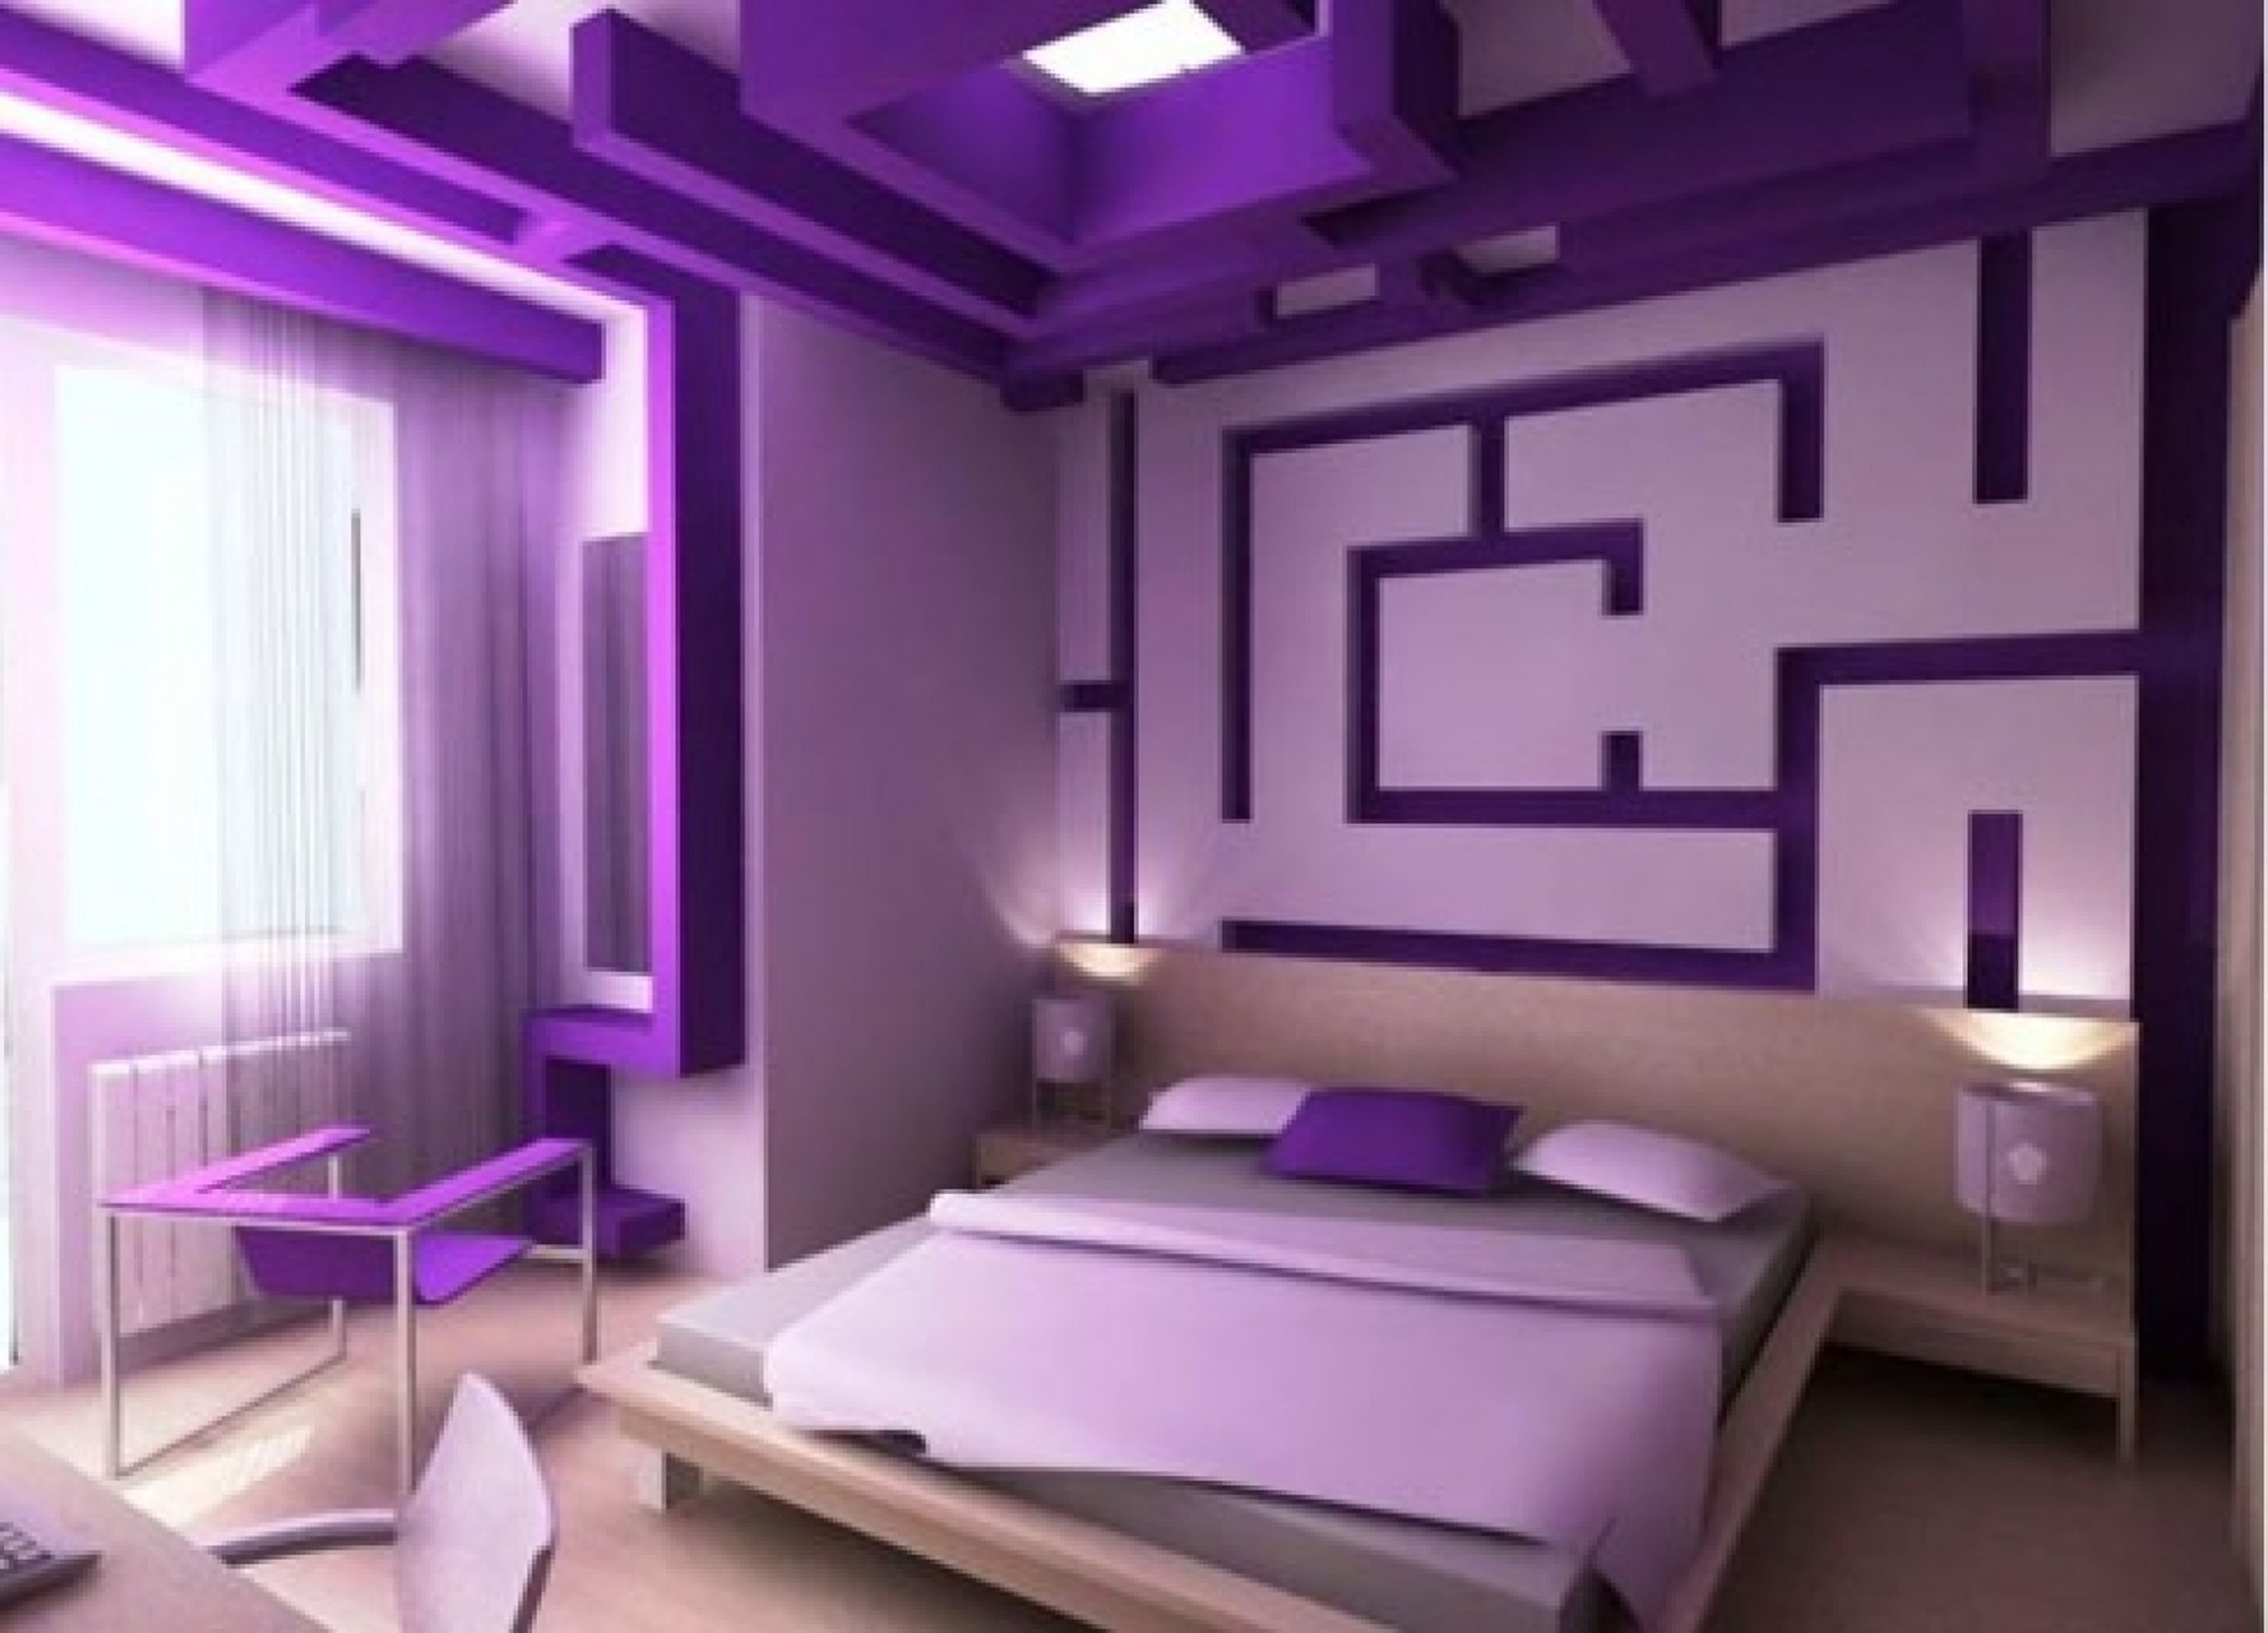 room - Interior Teen Bedroom Design